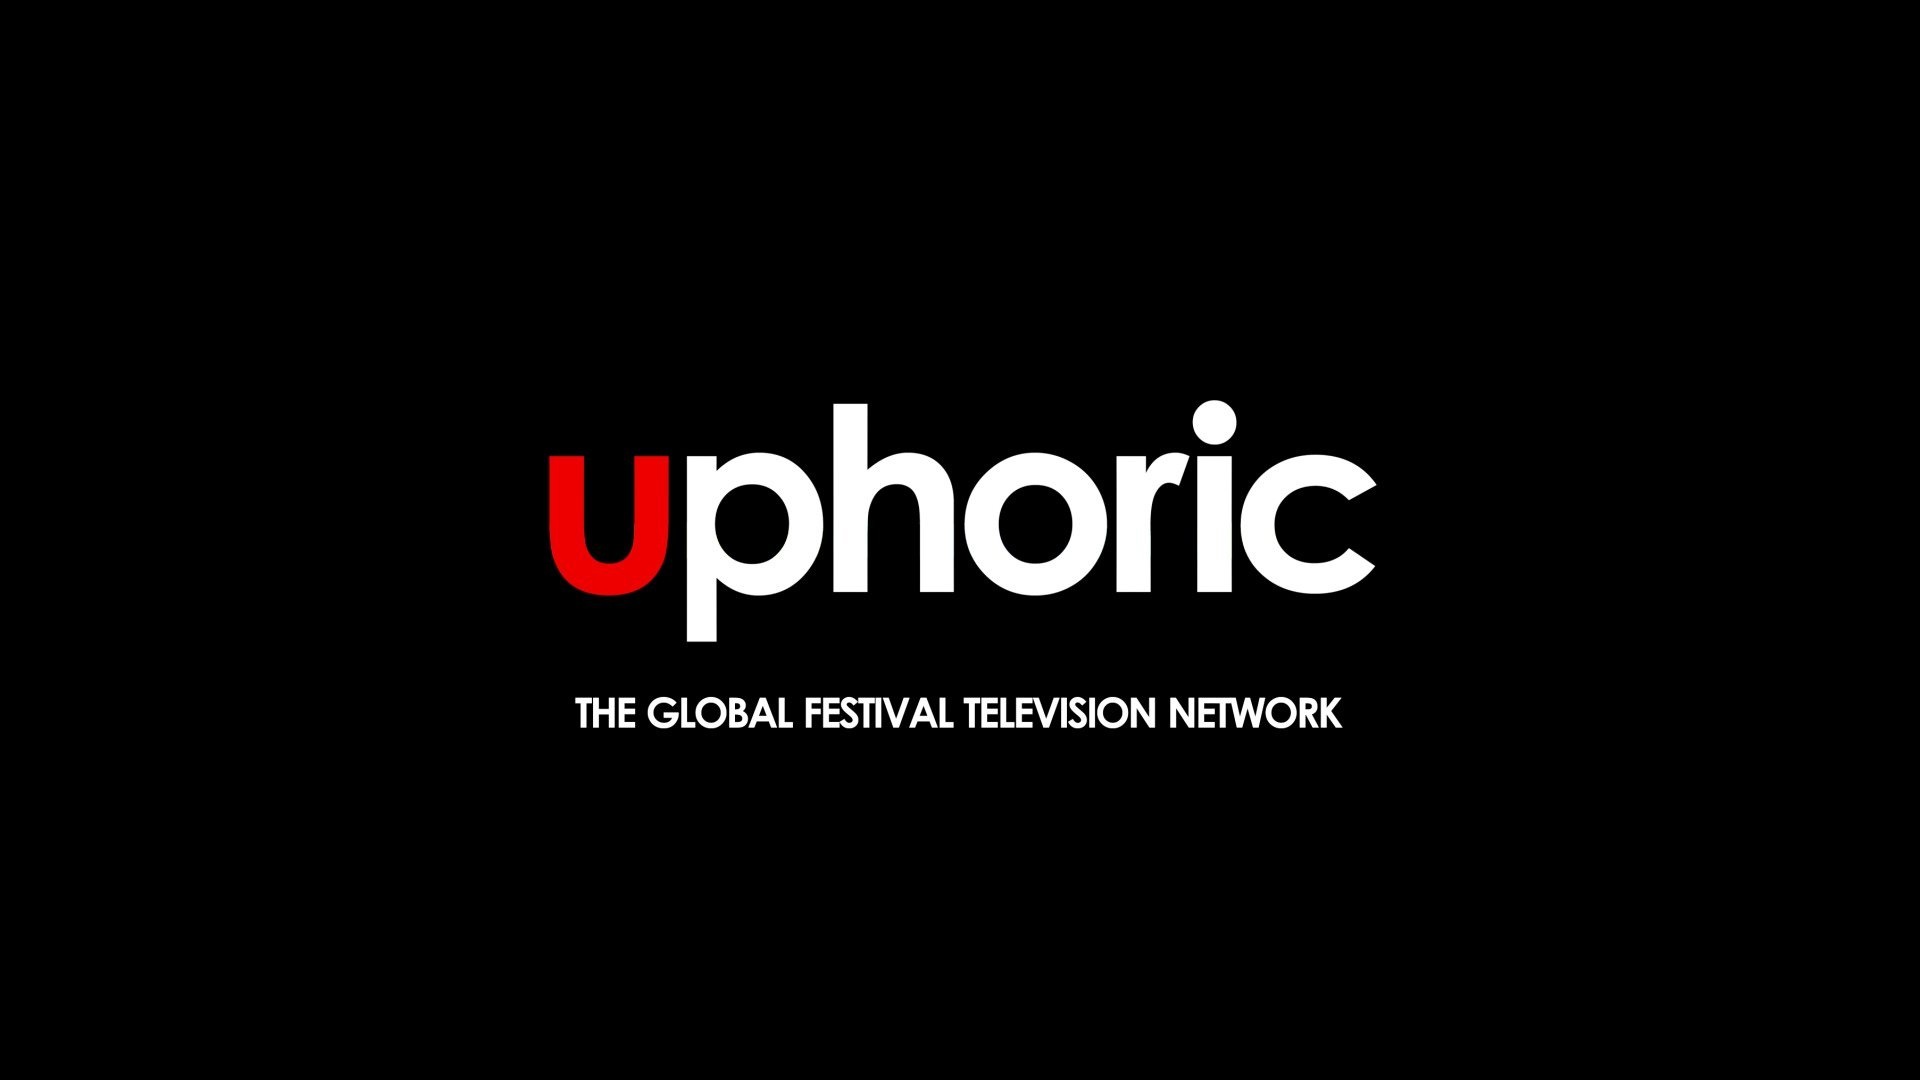 The first Global Festival Television Network is launching soon